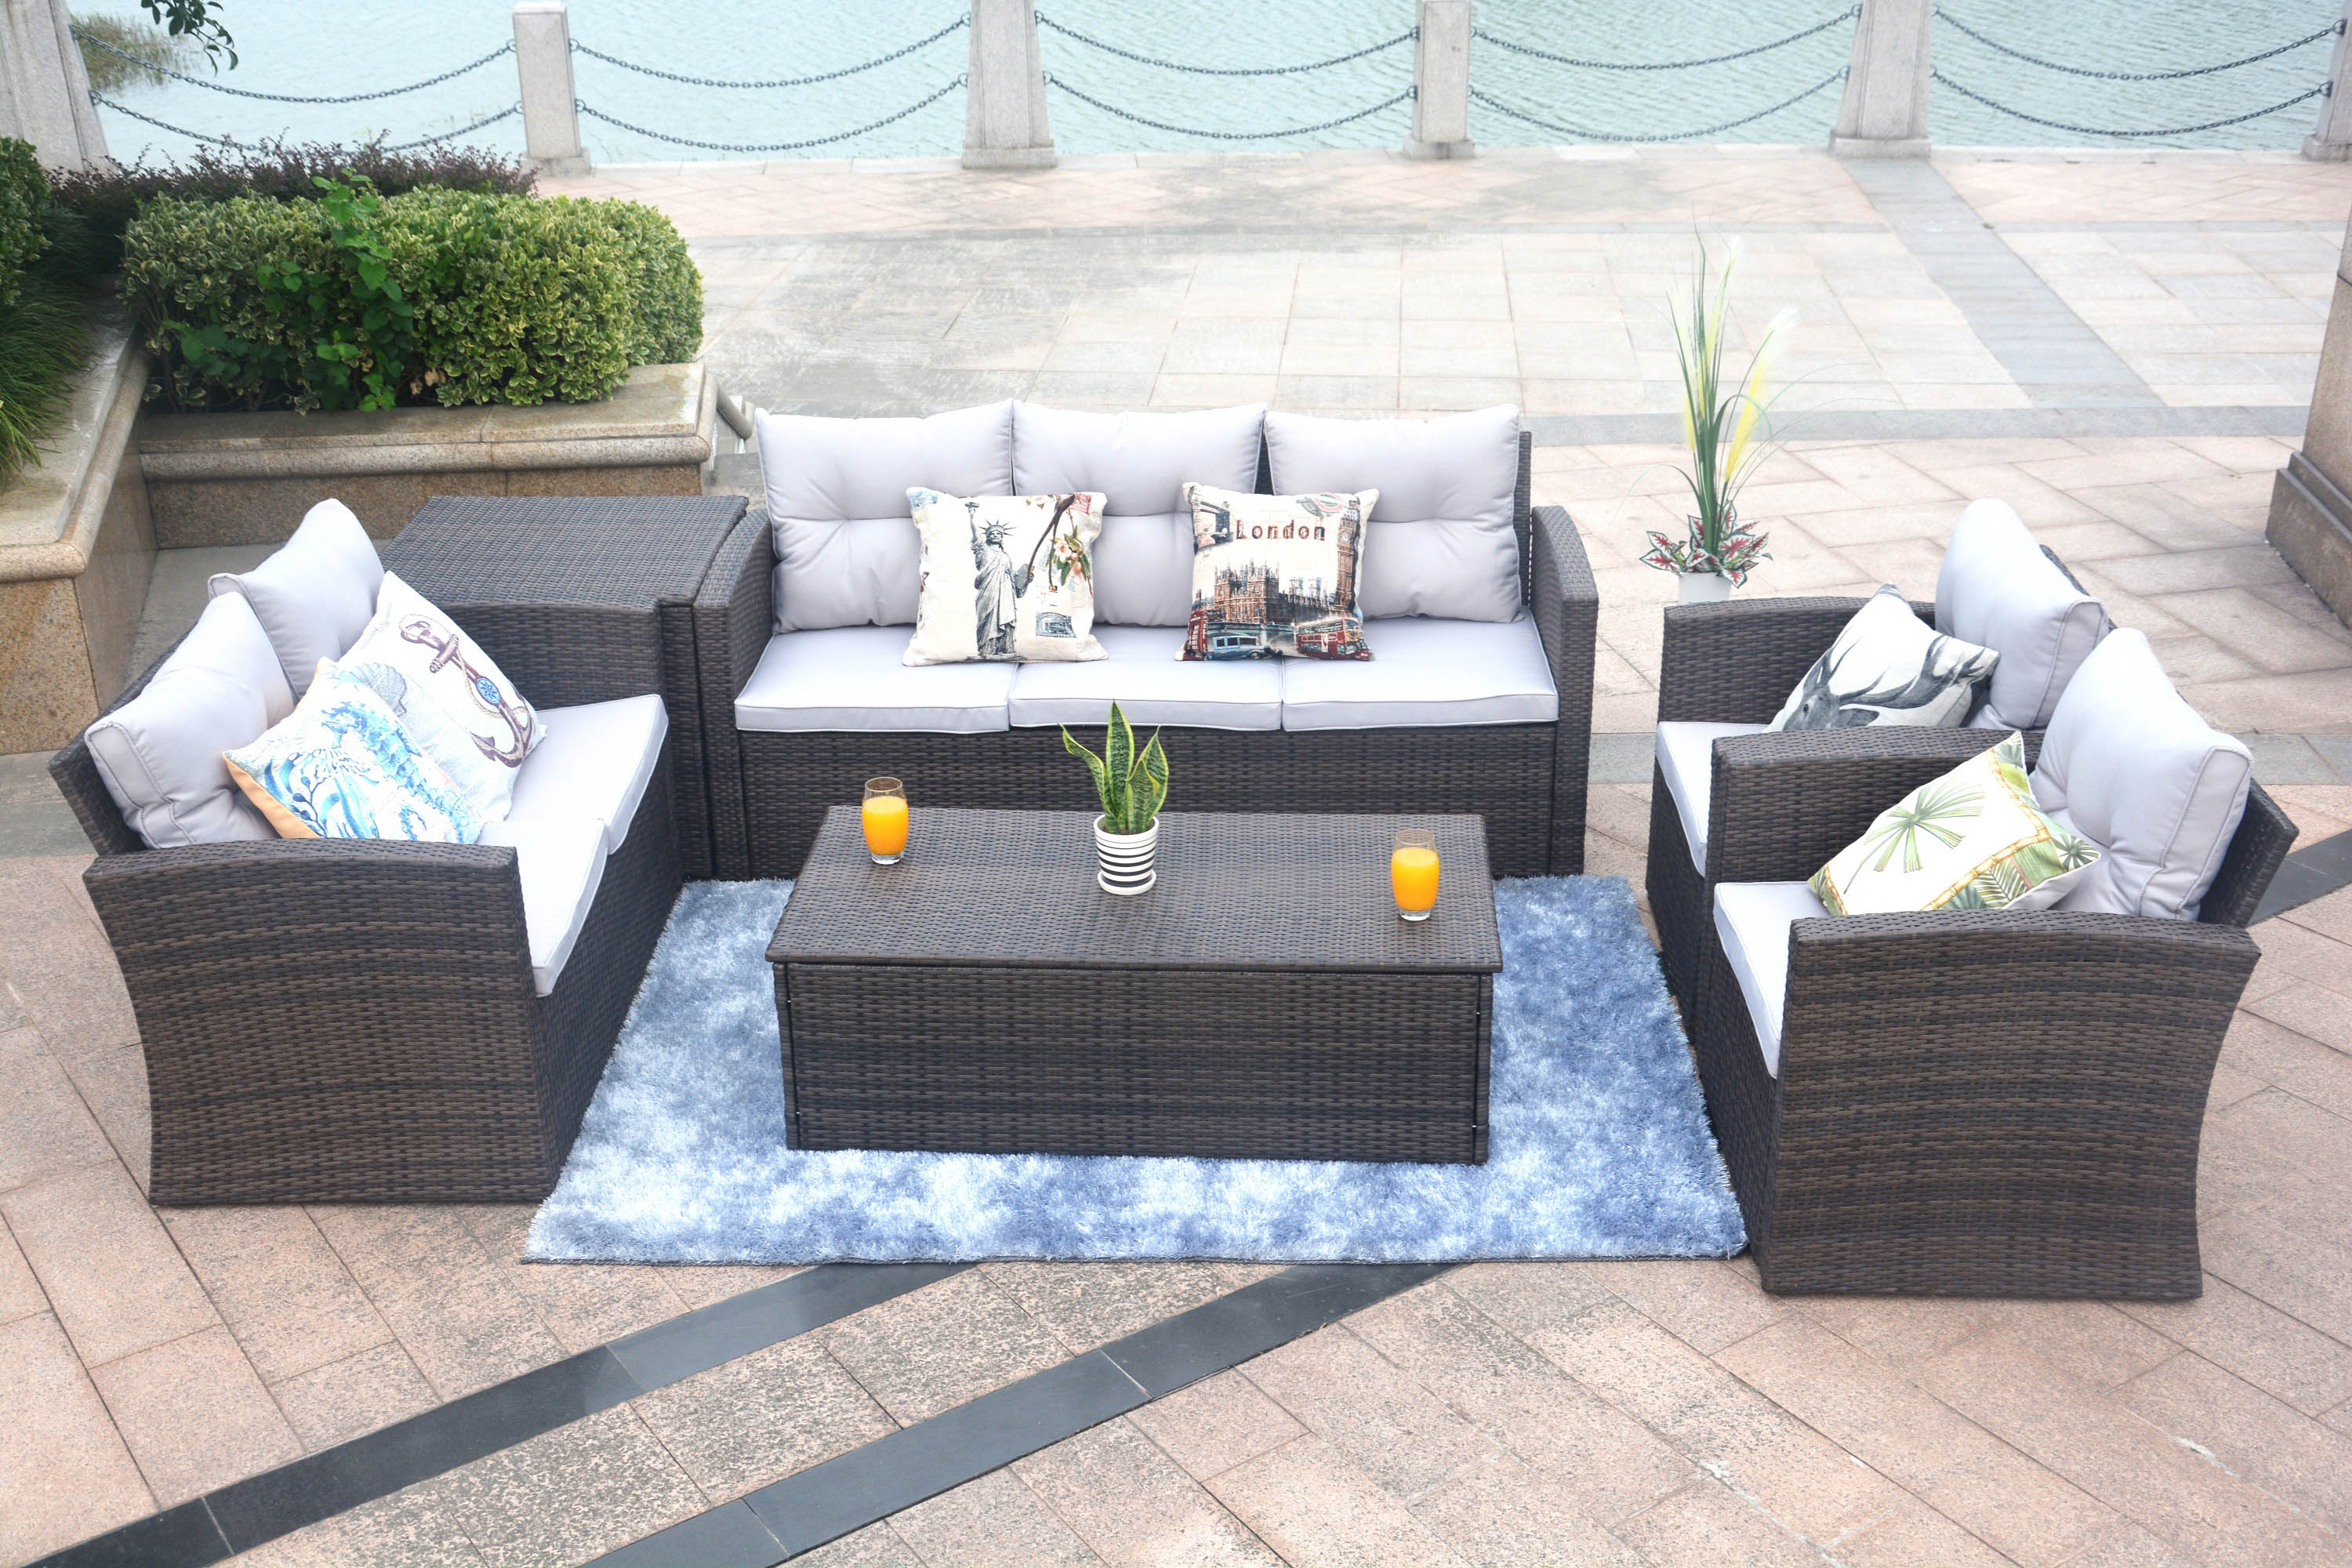 Edmond Outdoor Patio Set in Brown